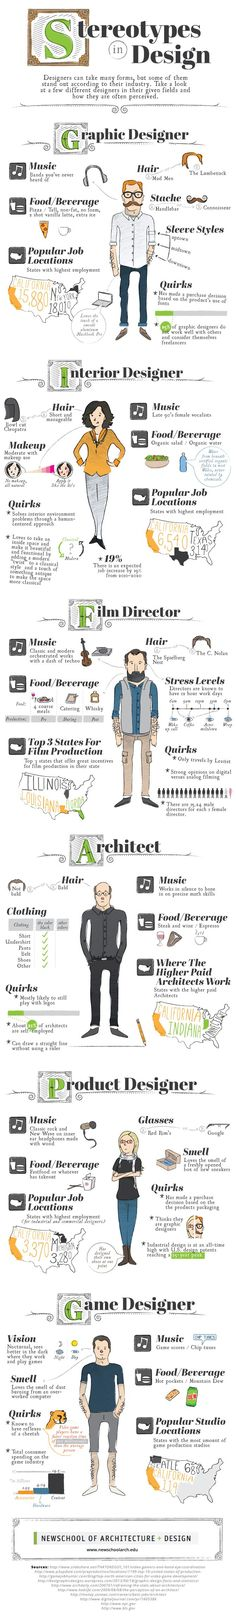 "DESIGN -         ""Infographic : Stereotypes in Design 